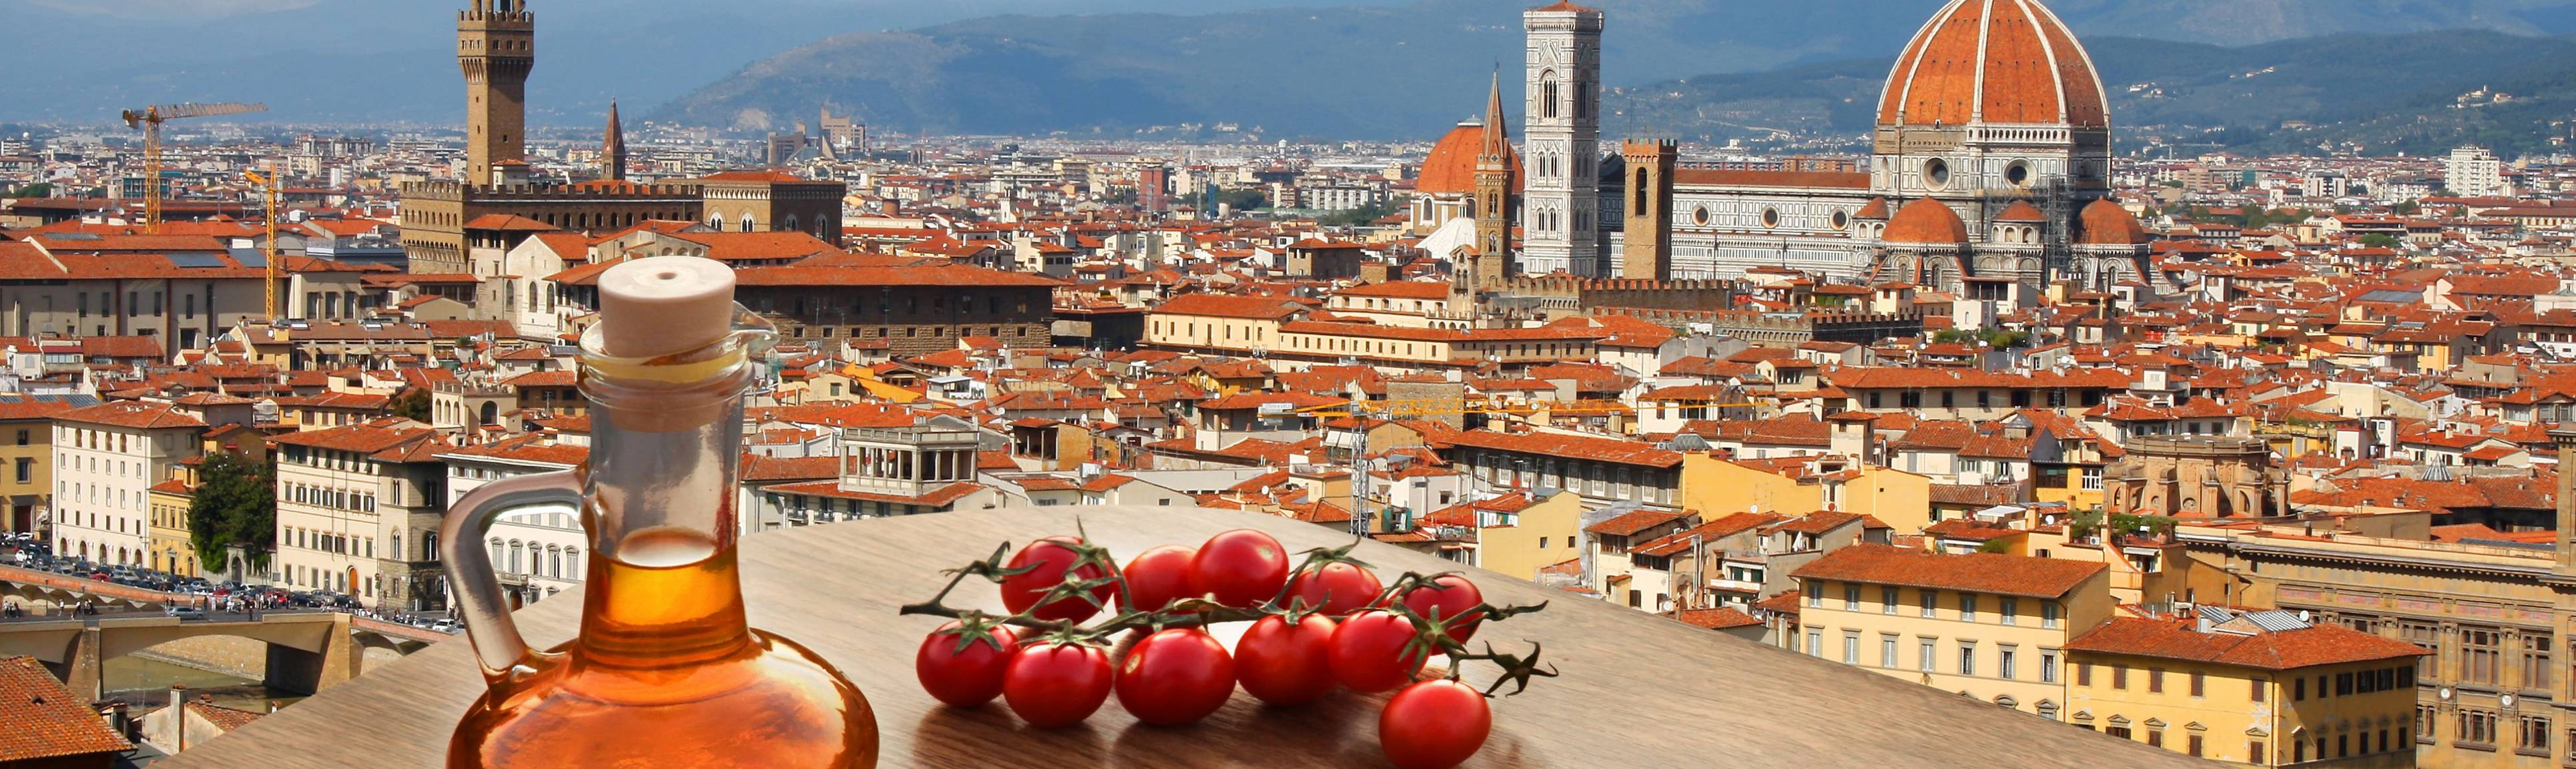 Tomatoes & olive oil on a table overlooking the rooftops of Florence